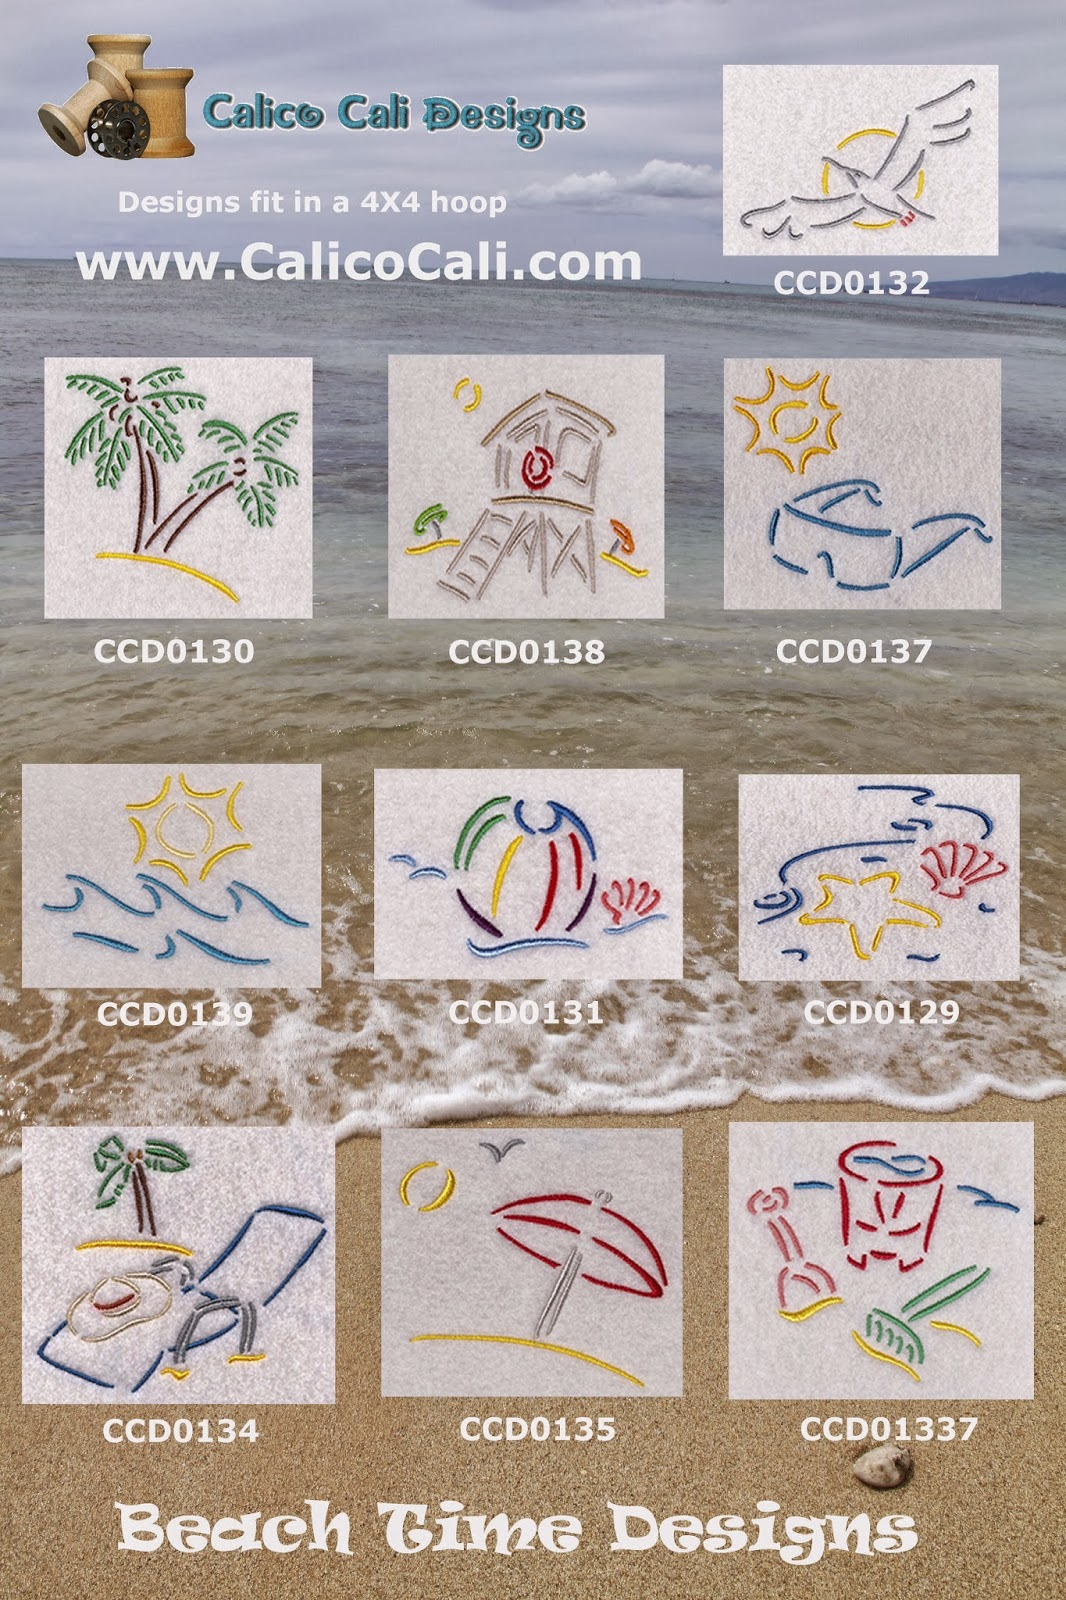 Beach Time Designs